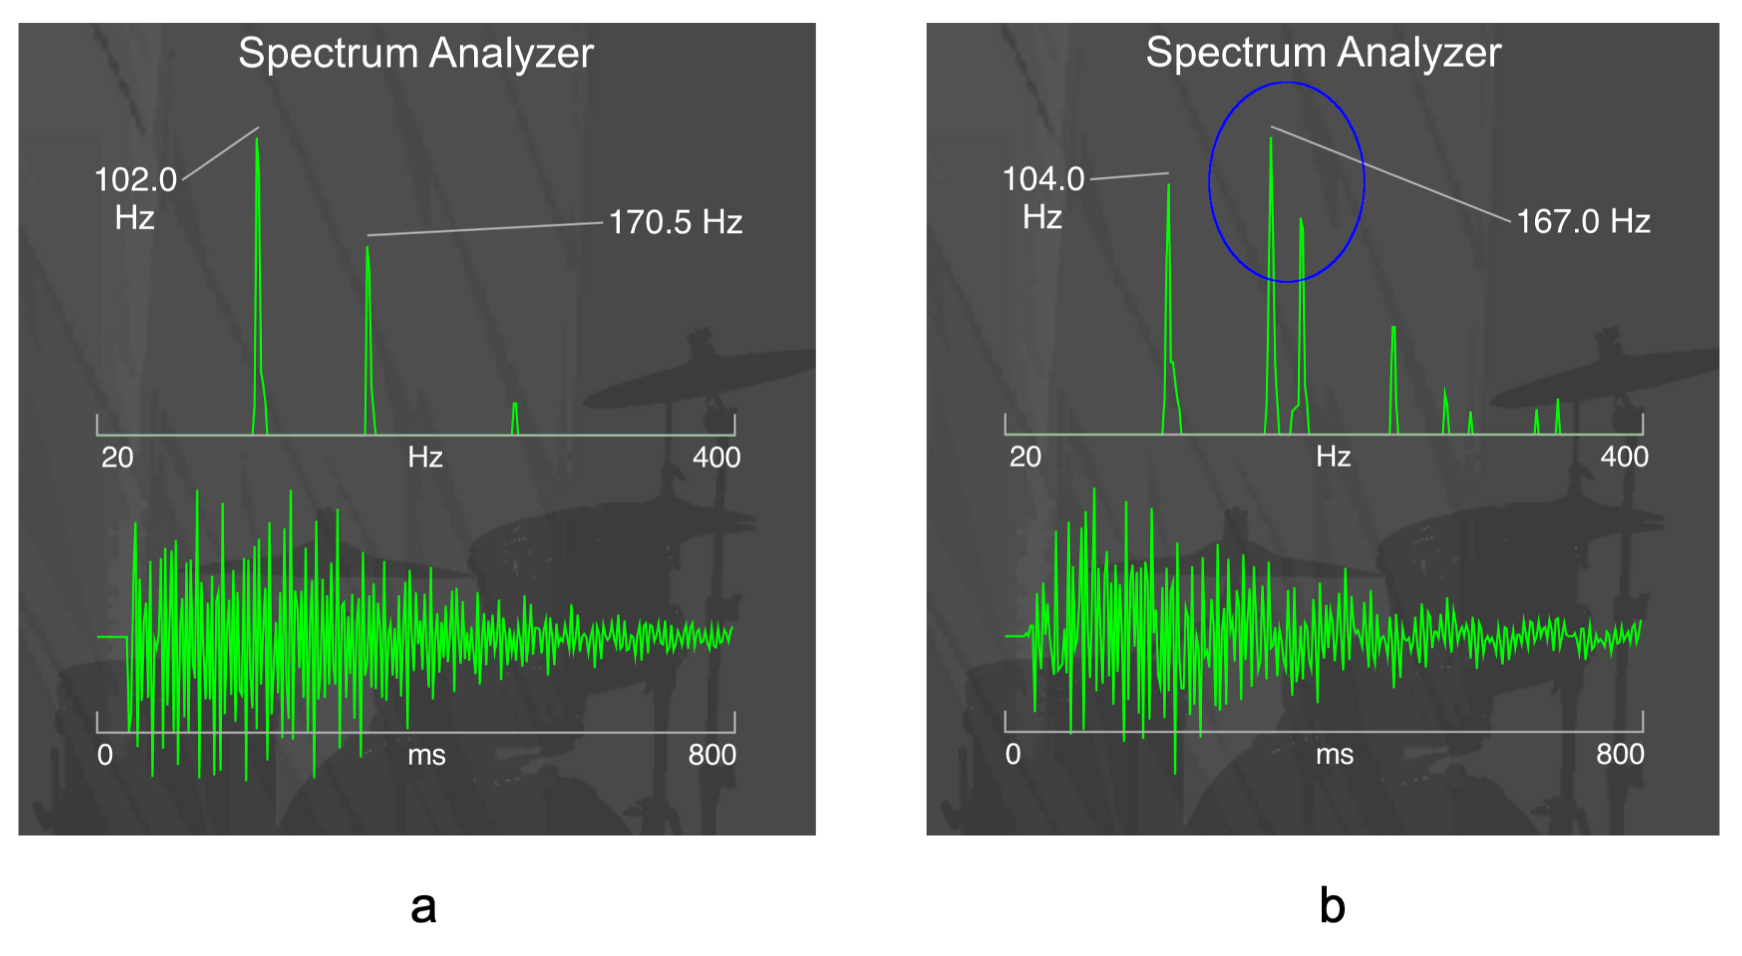 Figure 4.5. An evenly tuned drum gives clear fundamental and overtone peaks on the frequency spectrum (a), whereas an unevenly tuned drum (b) can often exhibit two frequency peaks around the region of the first overtone frequency